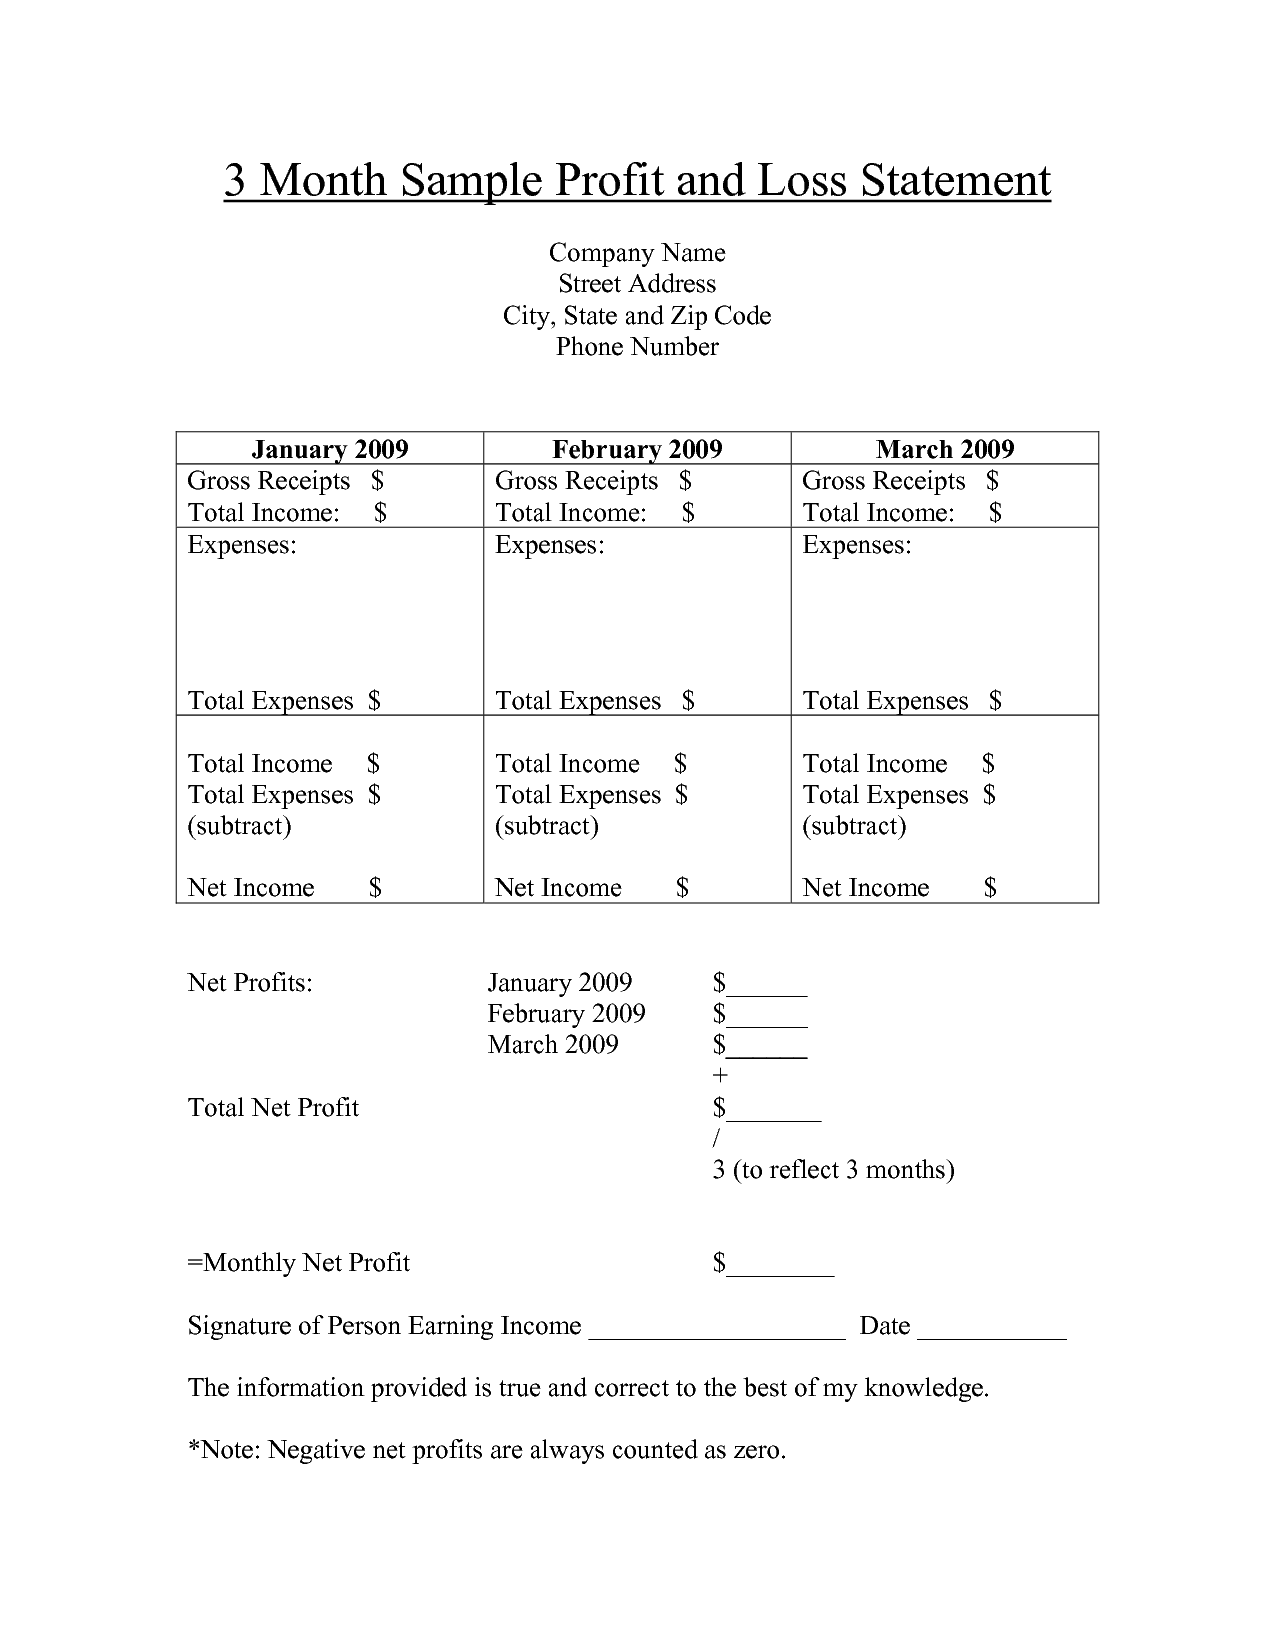 Free Printable Profit and Loss Statement Form for Home Care Bing – Free Profit and Loss Template for Self Employed